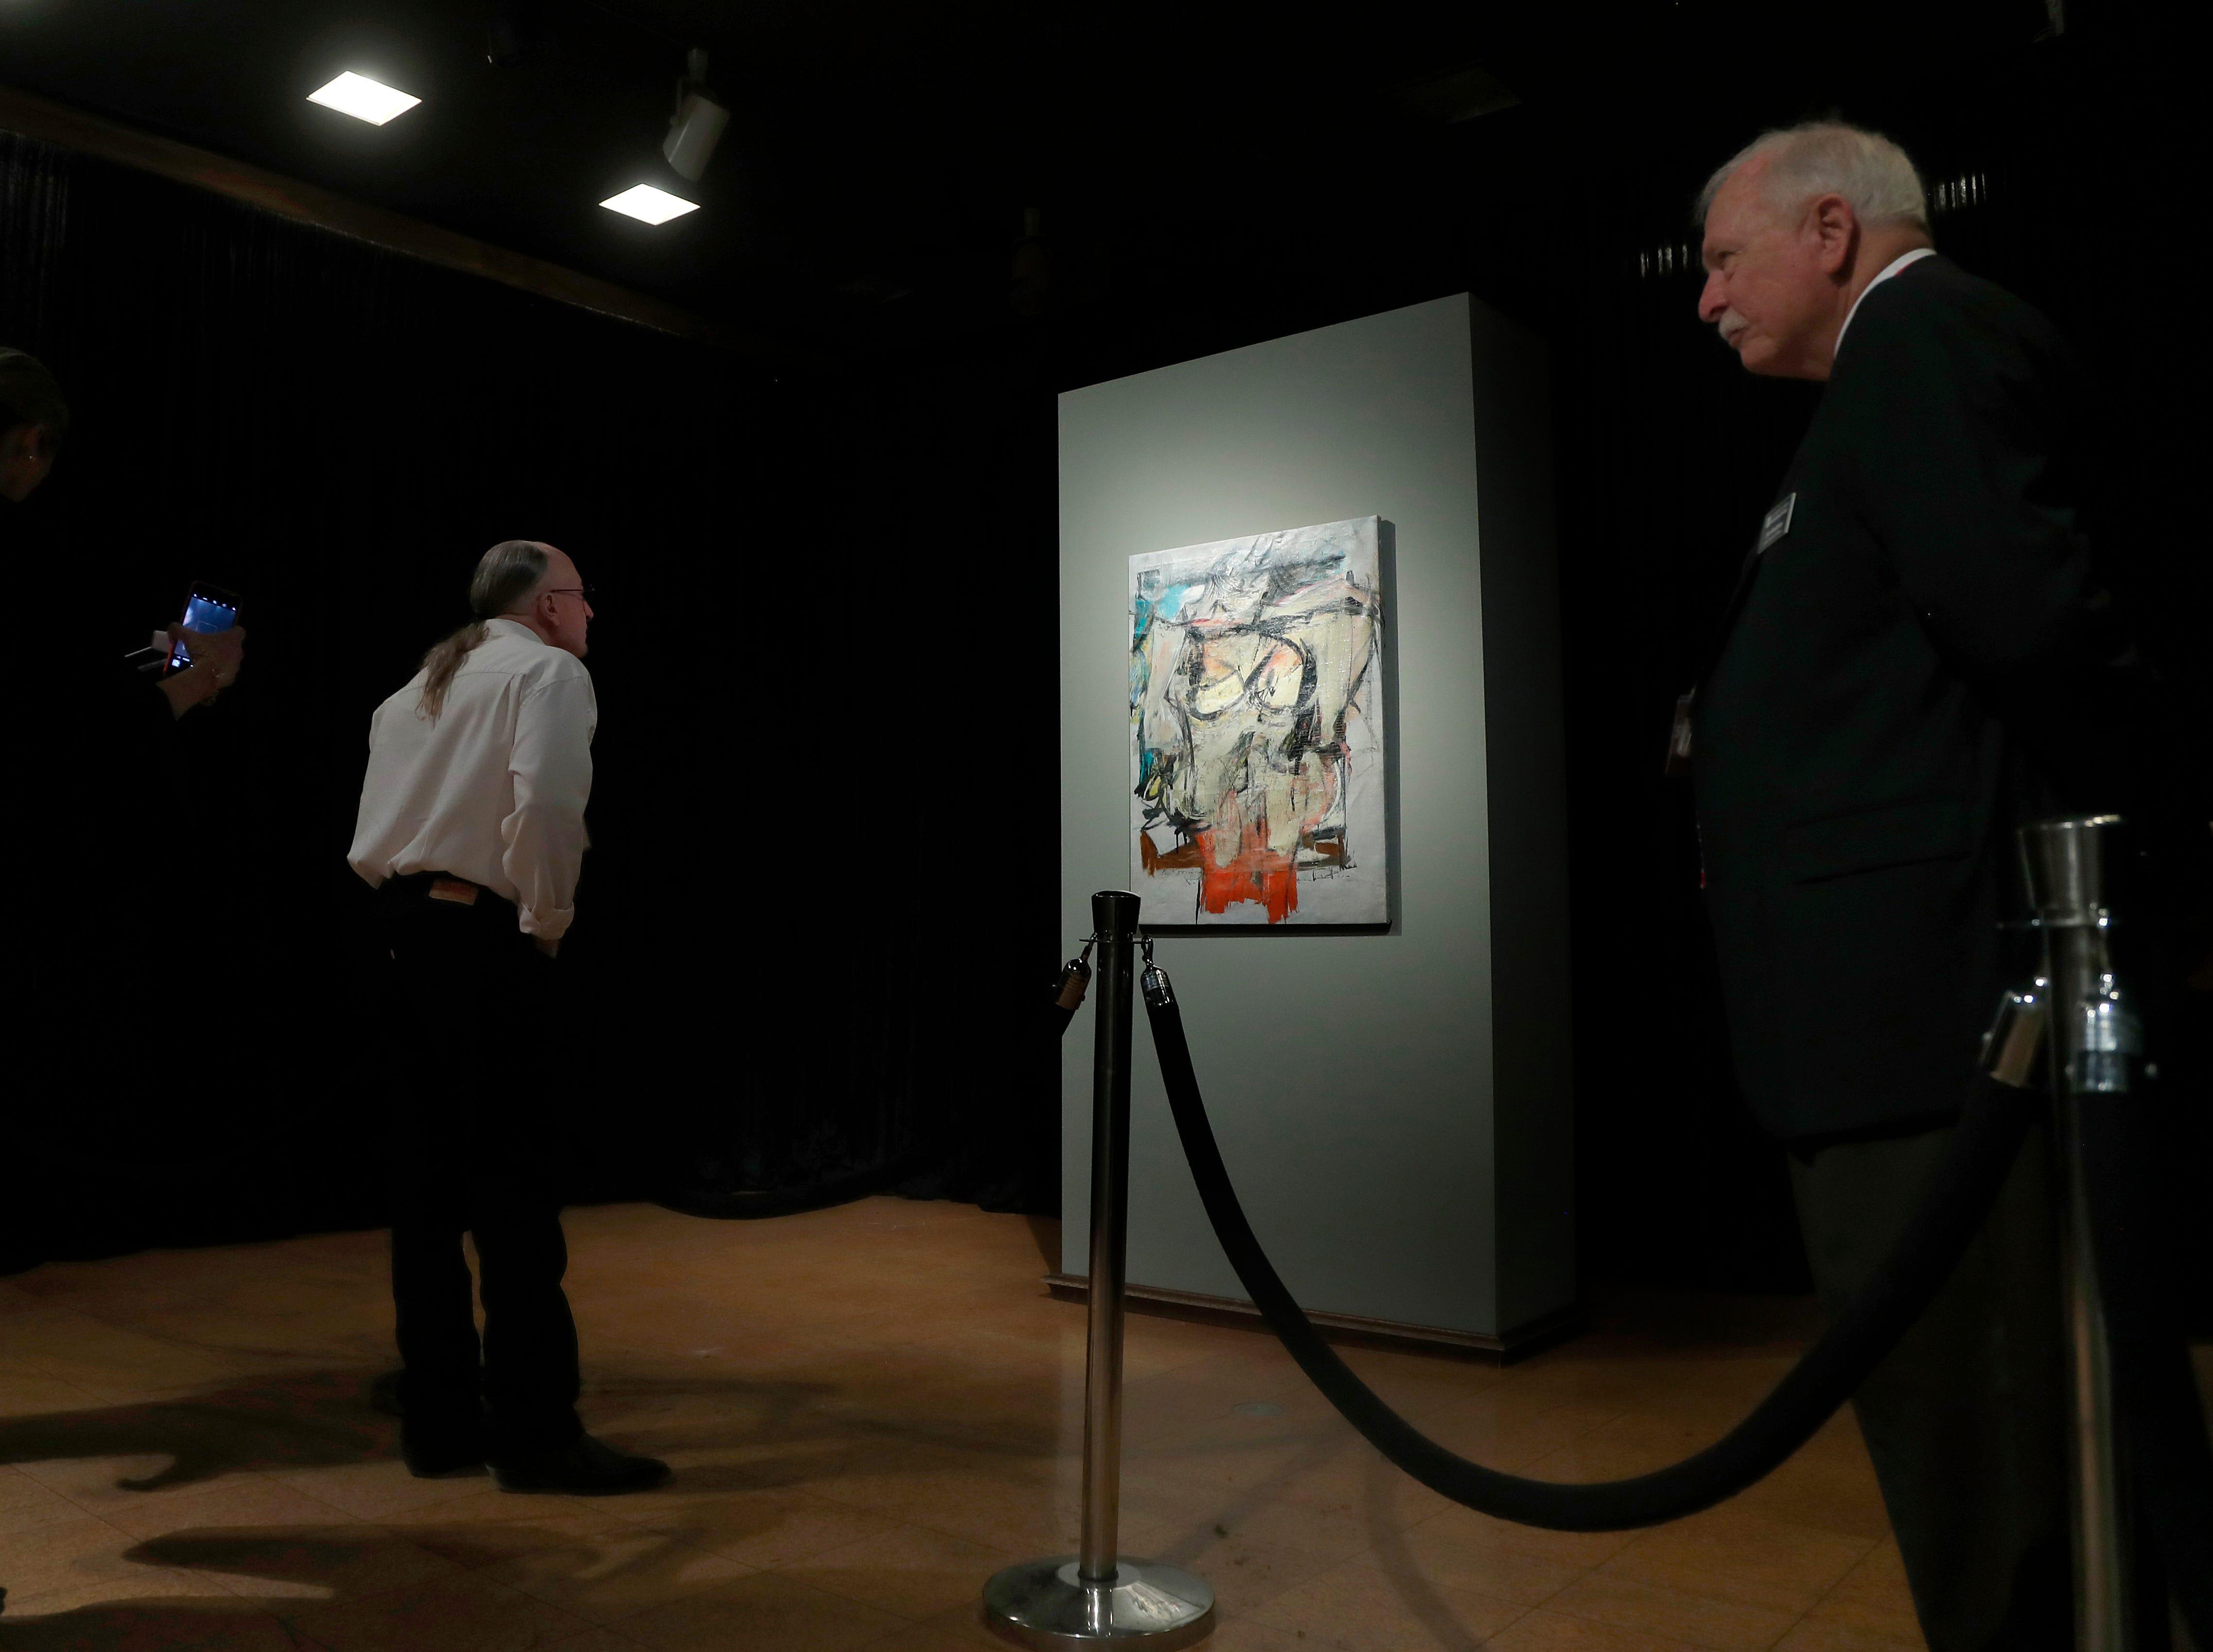 """Sitting on display, Willem de Kooning's """"Woman-Ochre,"""" stolen in 1985, draws a crowd at the University of Arizona Museum of Art in Tucson on March 17, 2019."""